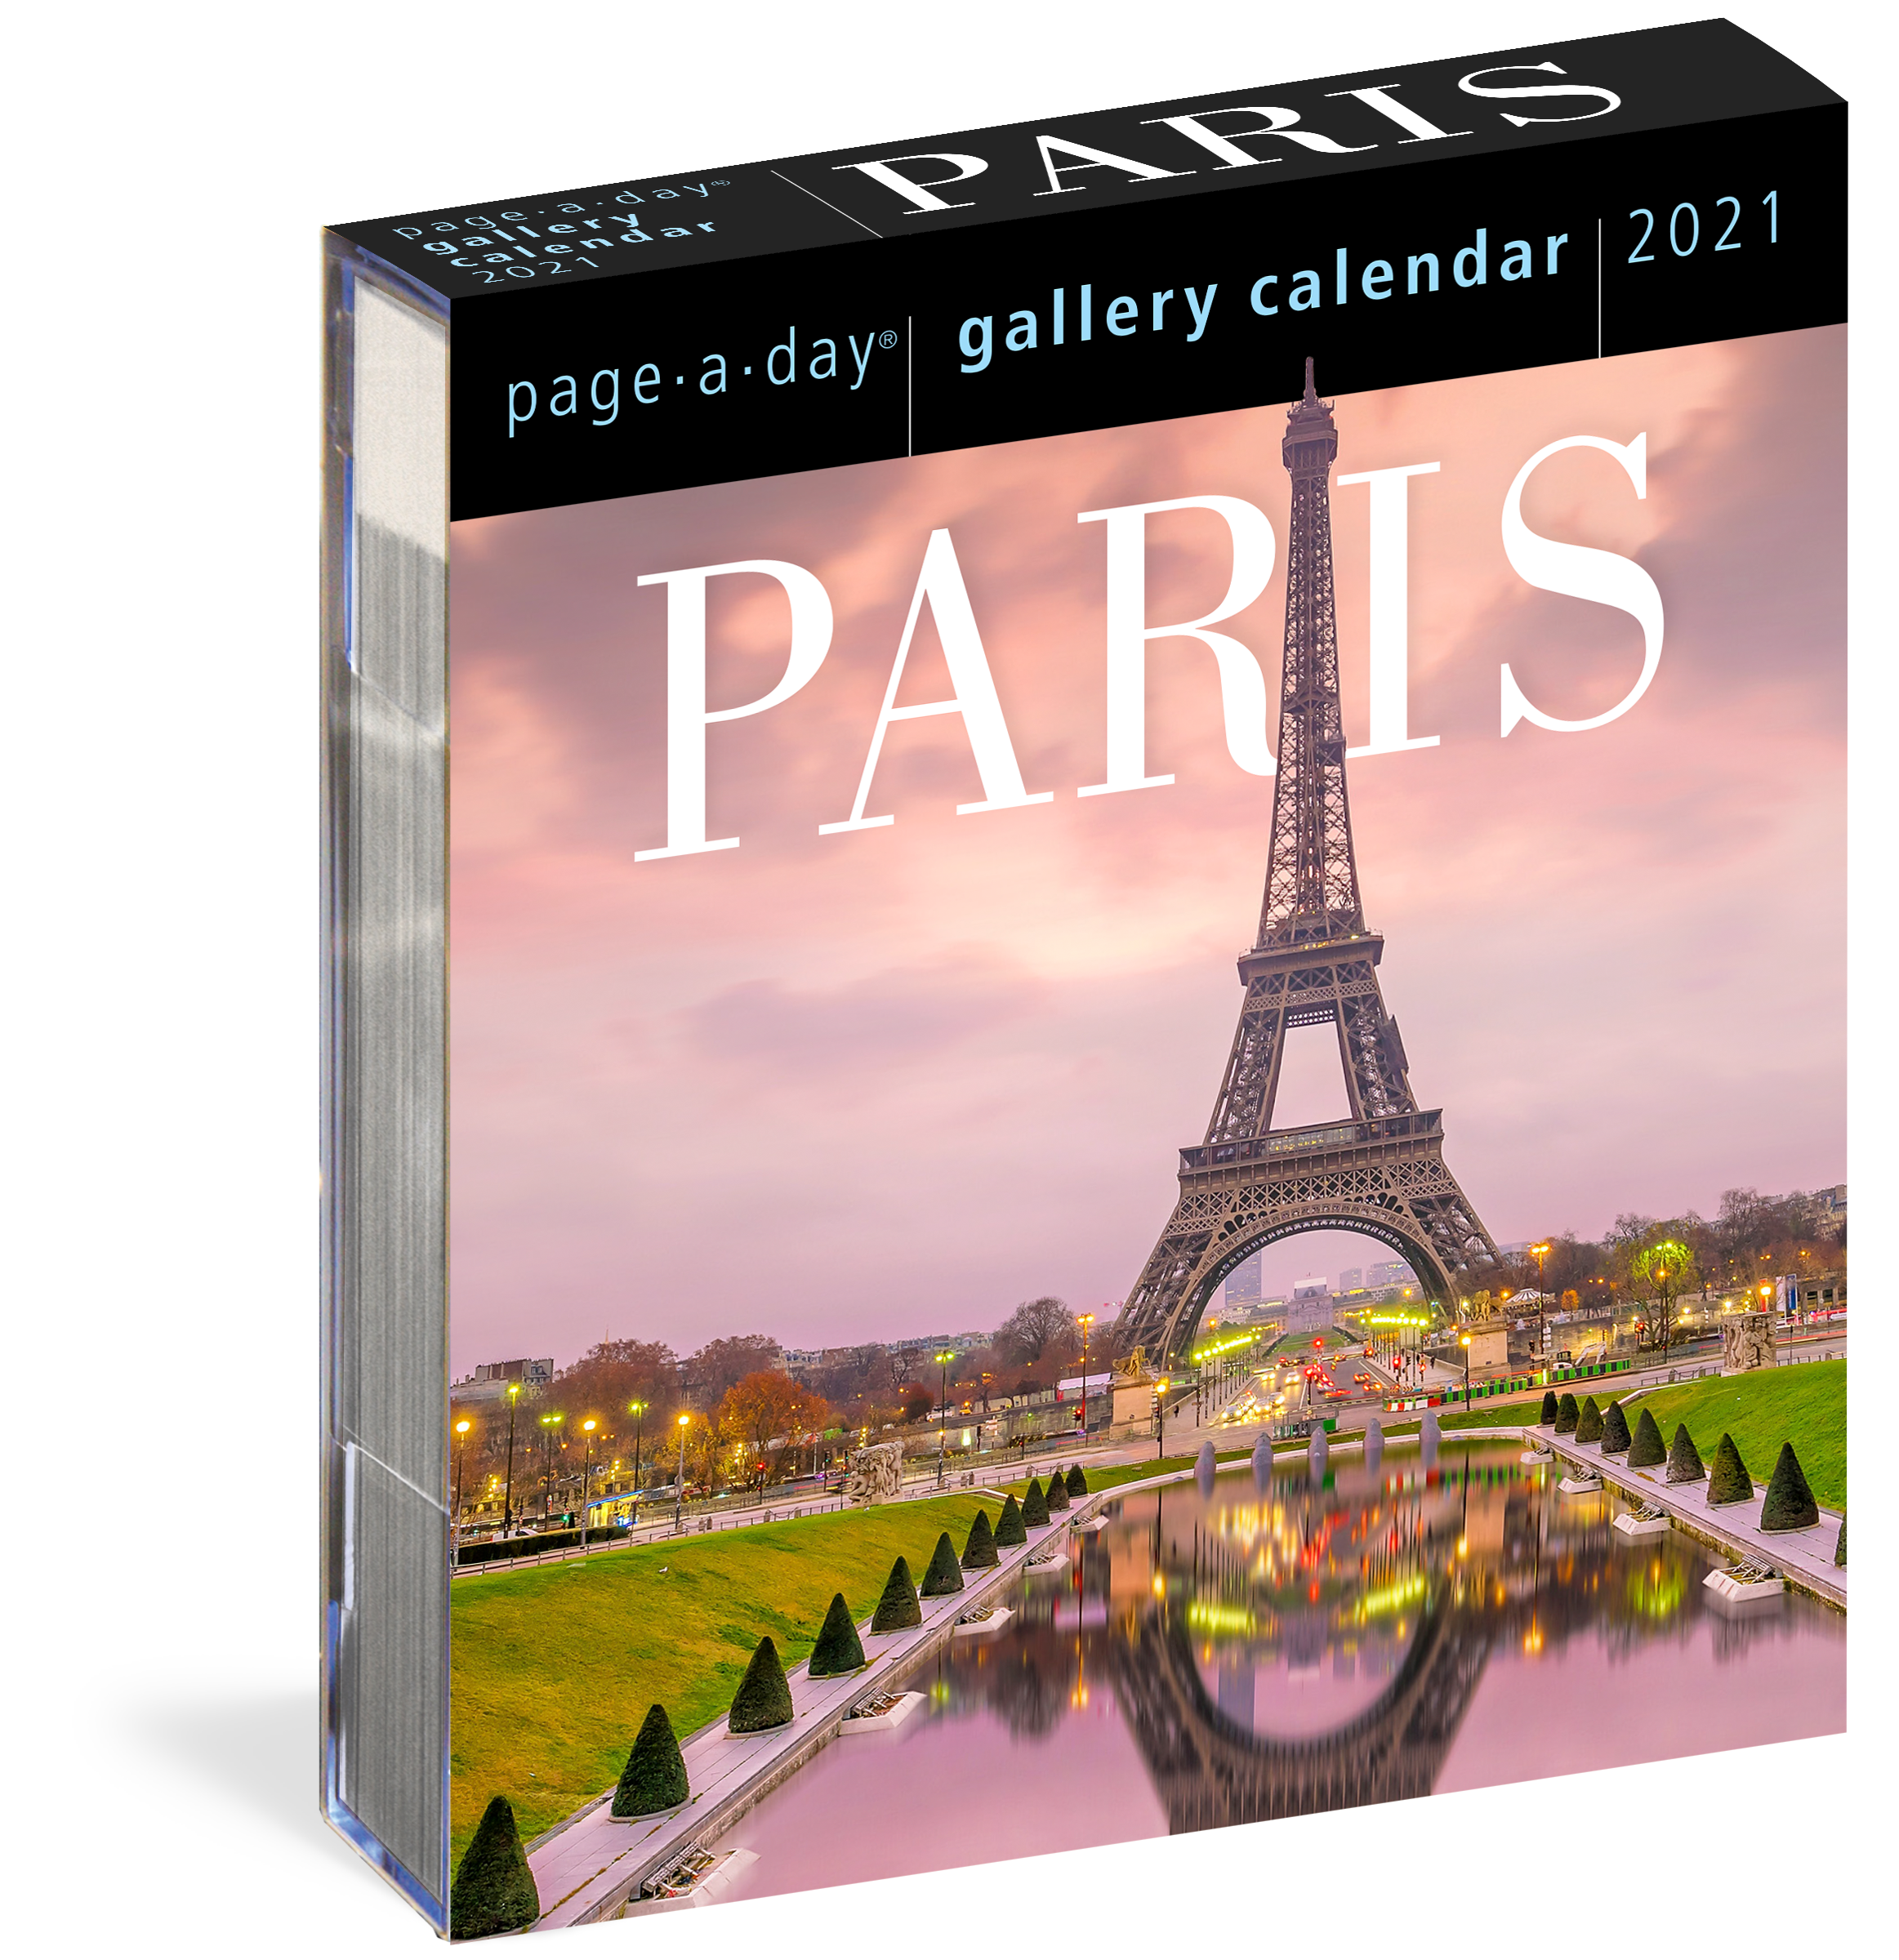 Page A Day Gallery Calendar 2021 Paris Page A Day Gallery Calendar 2021   Workman Publishing